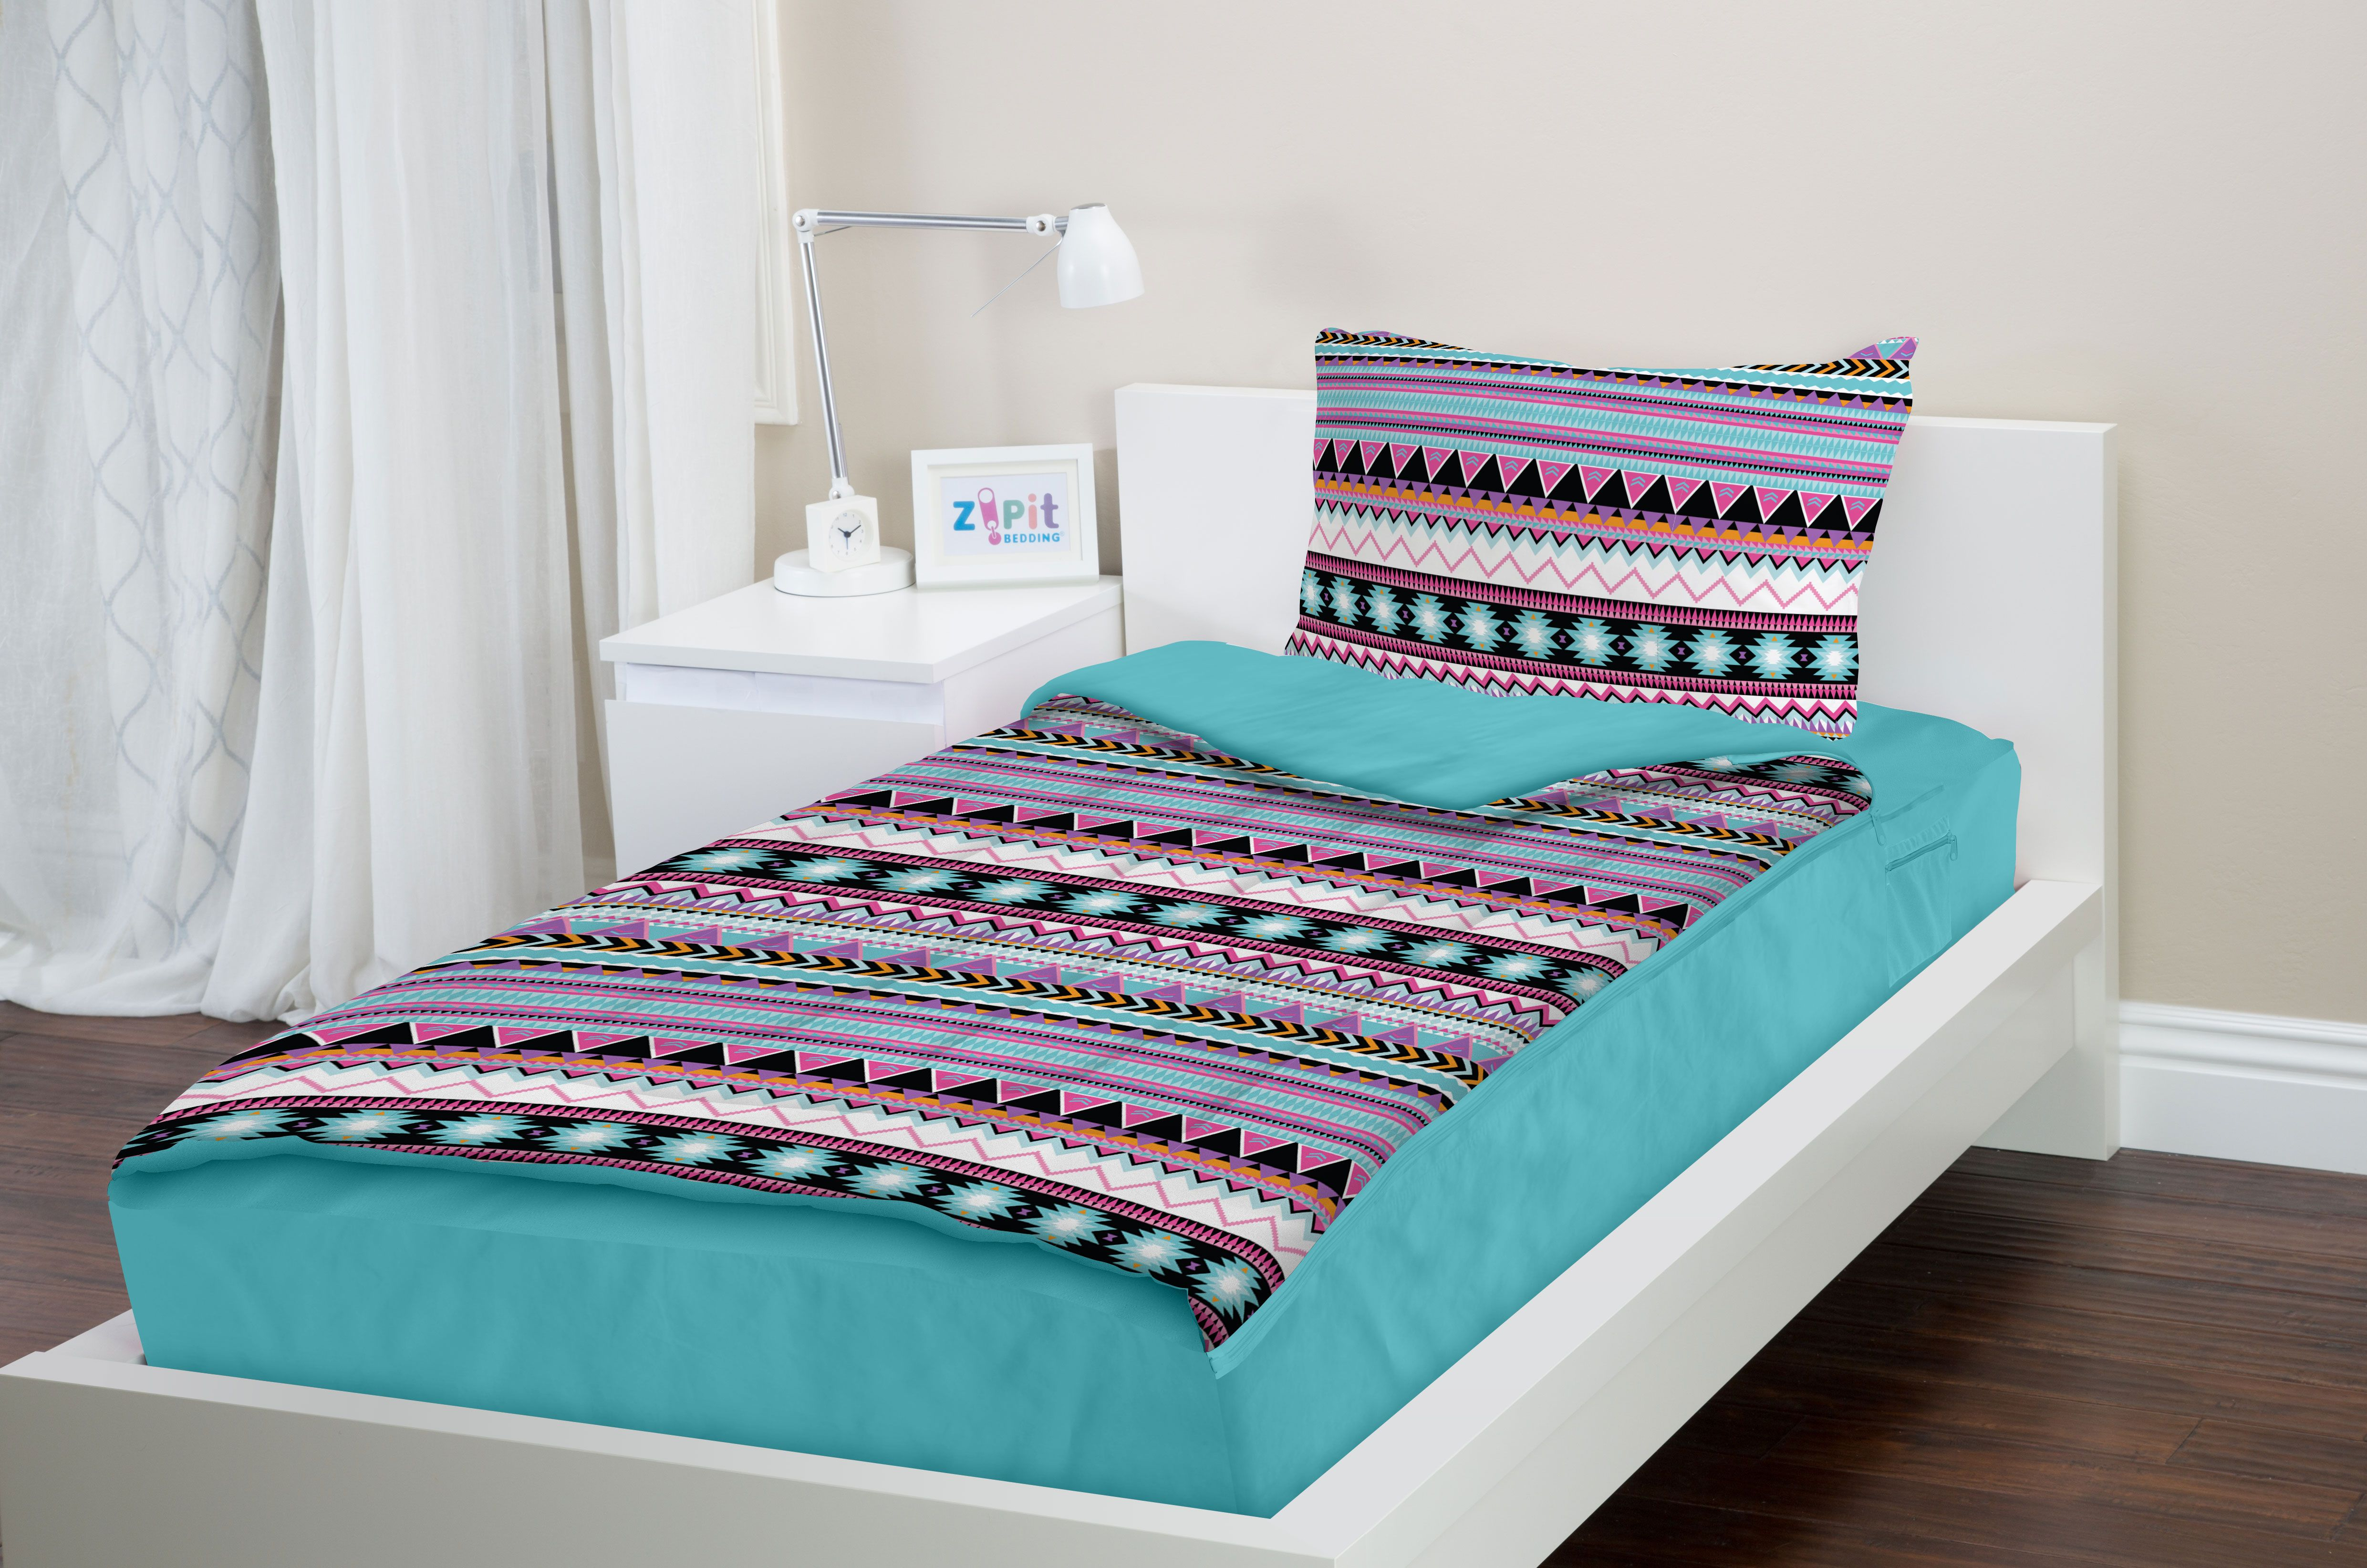 Zipit Bedding Set ZipUp Your Sheets and Comforter Like